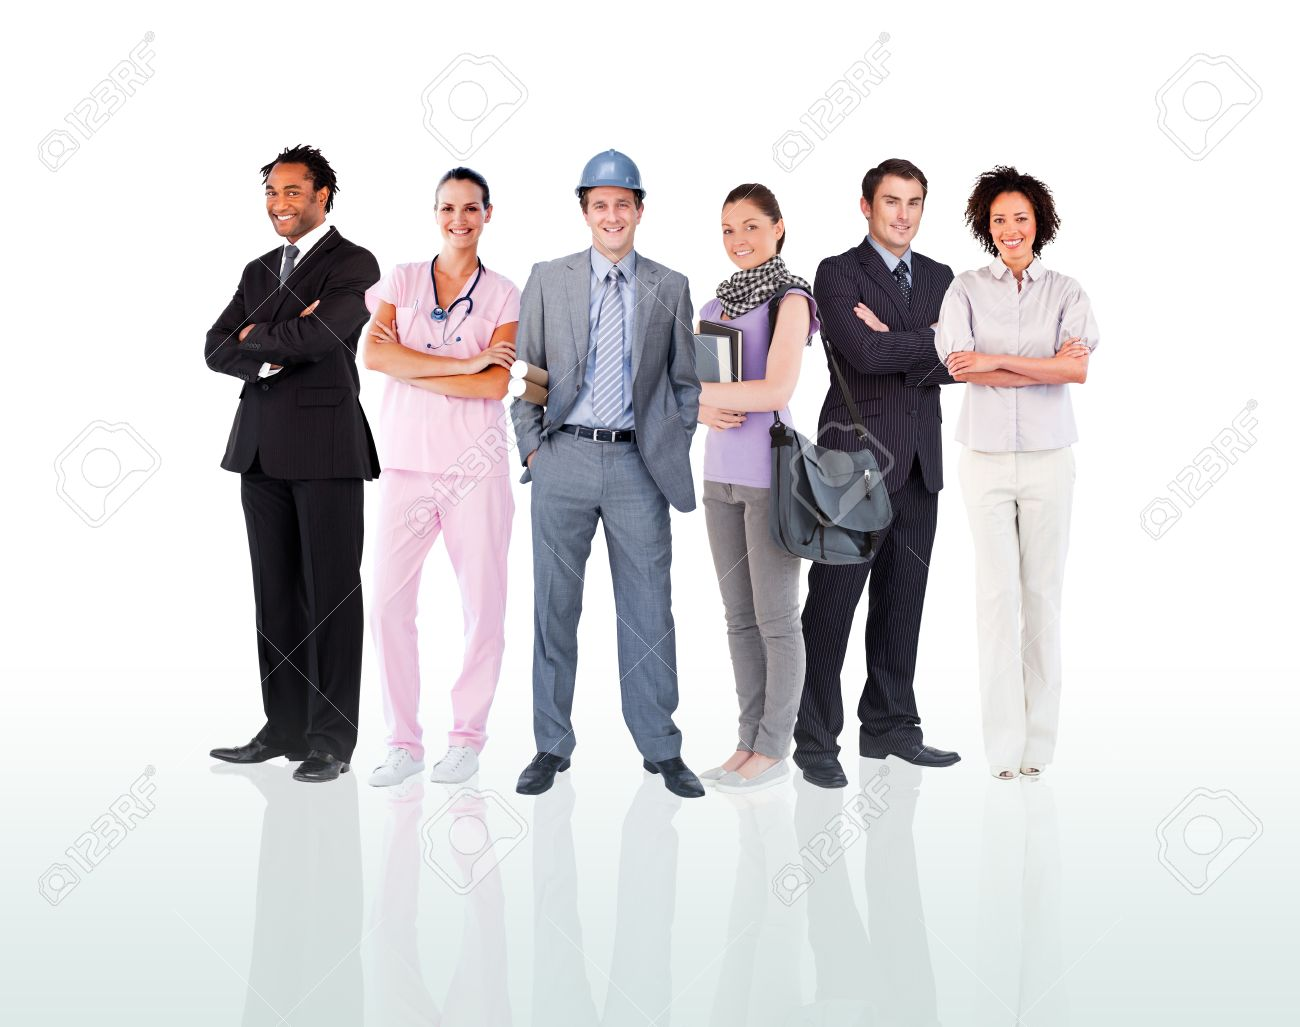 Smiling people posing against a white background Stock Photo - 11184362